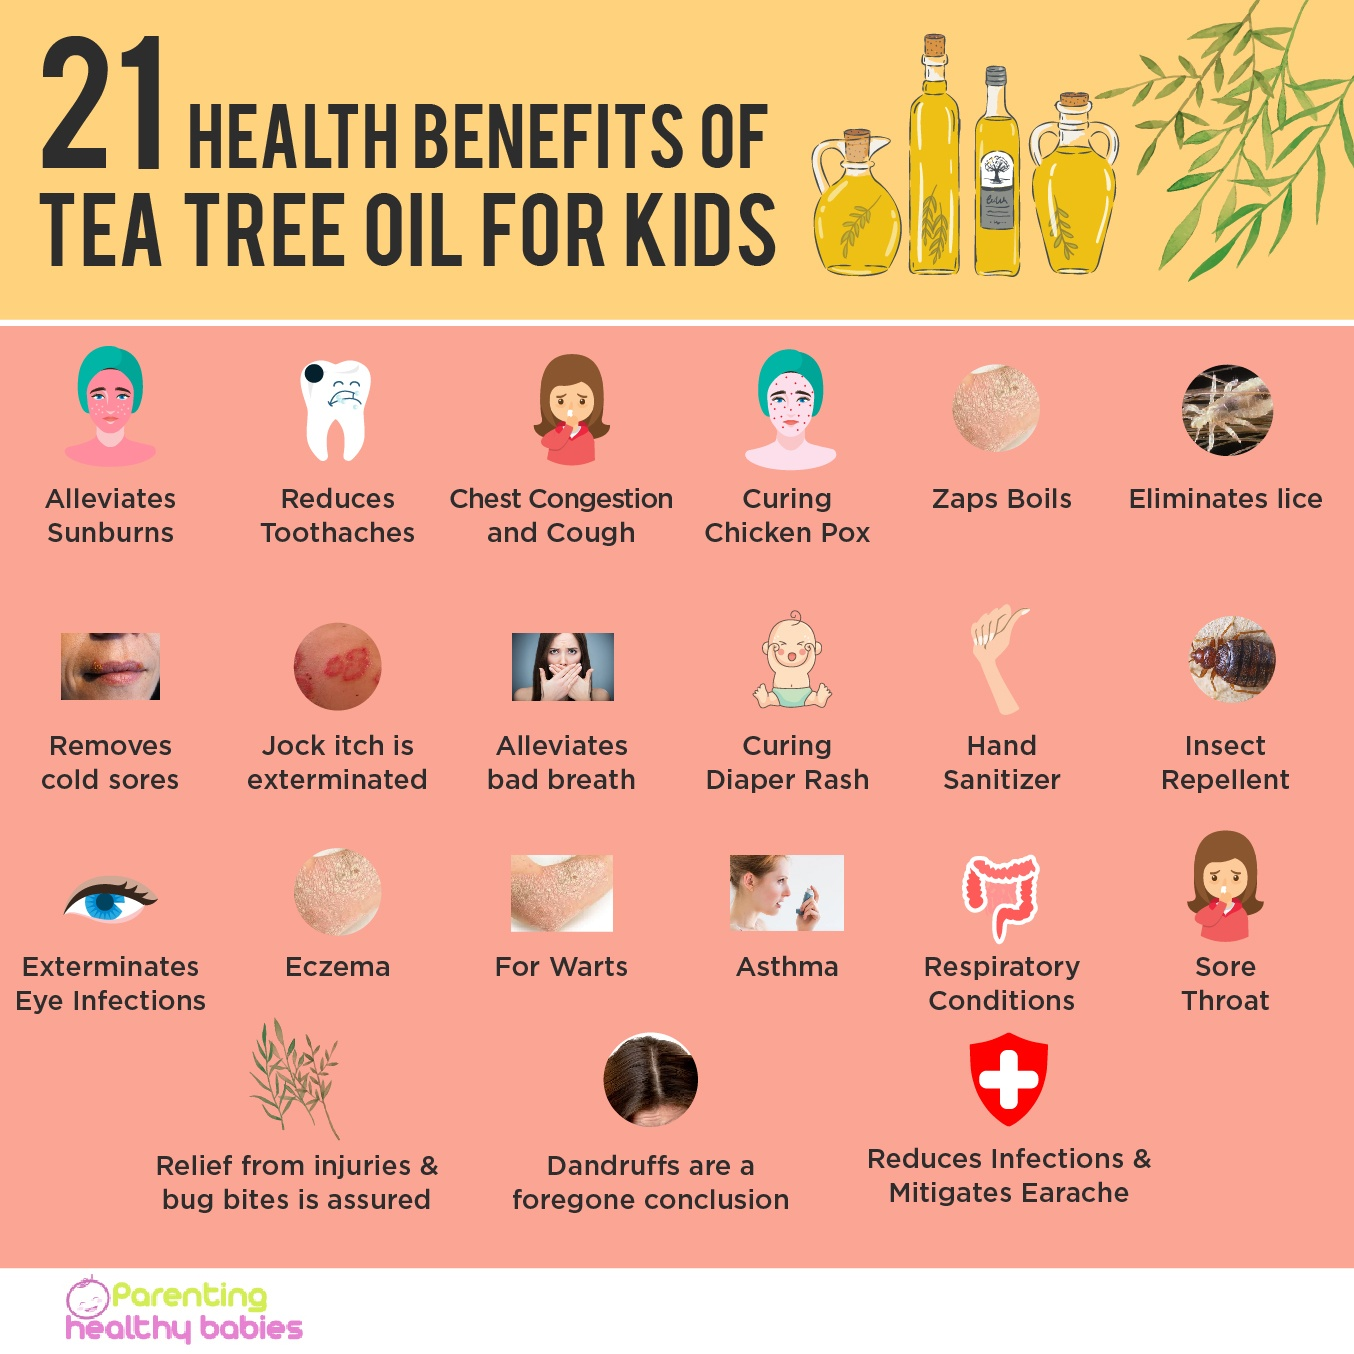 Tea Tree Oil for Children